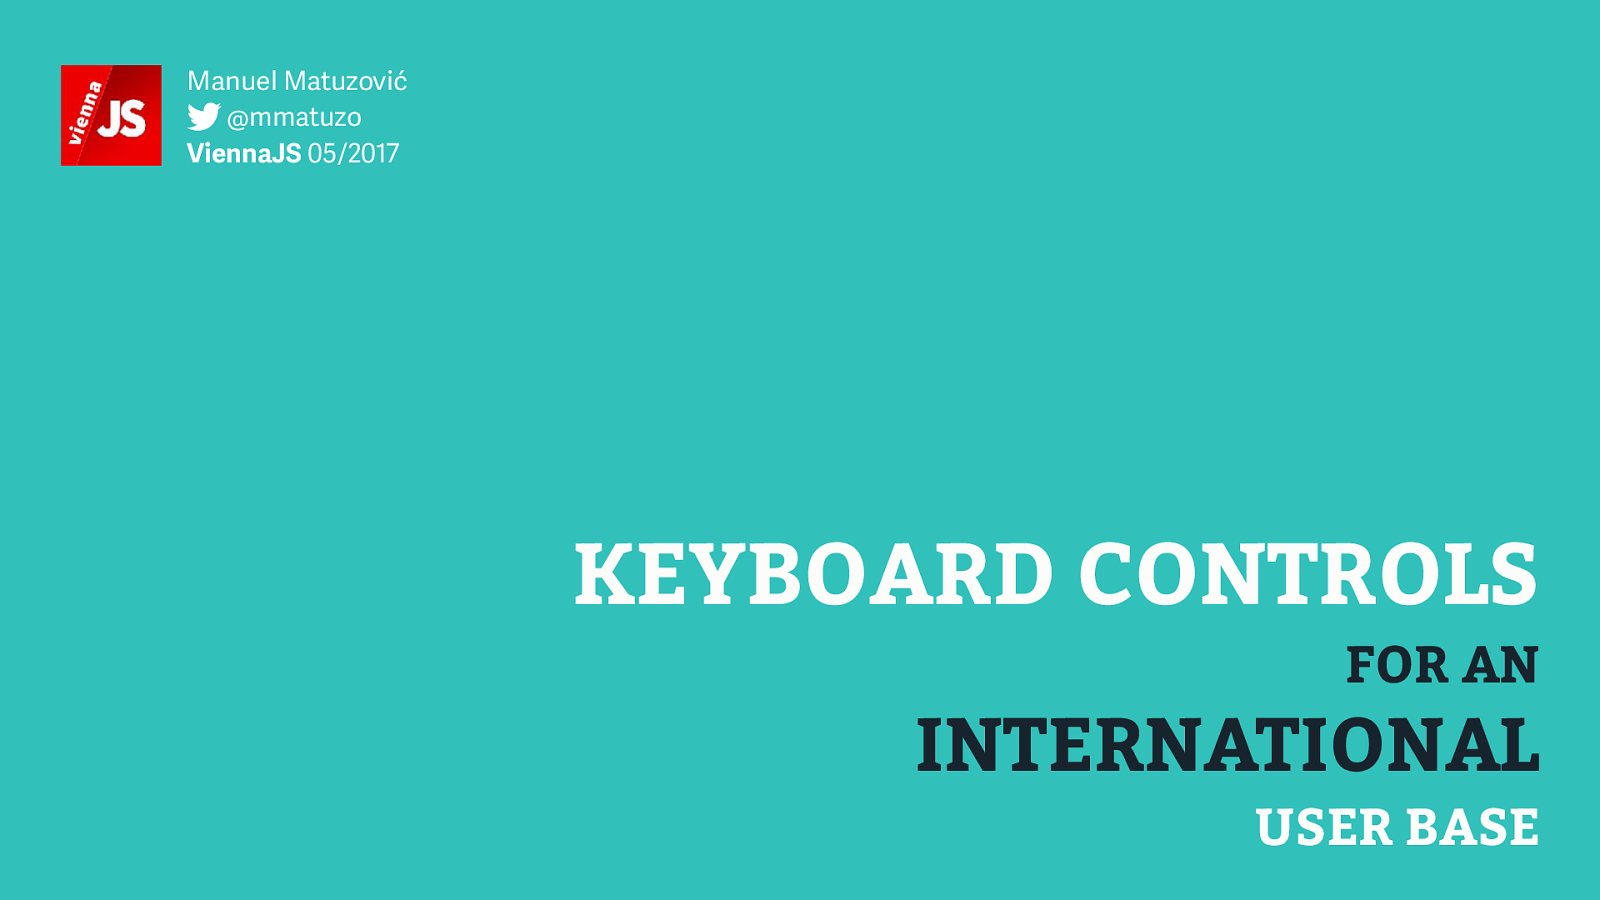 Keyboard controls for an international user base